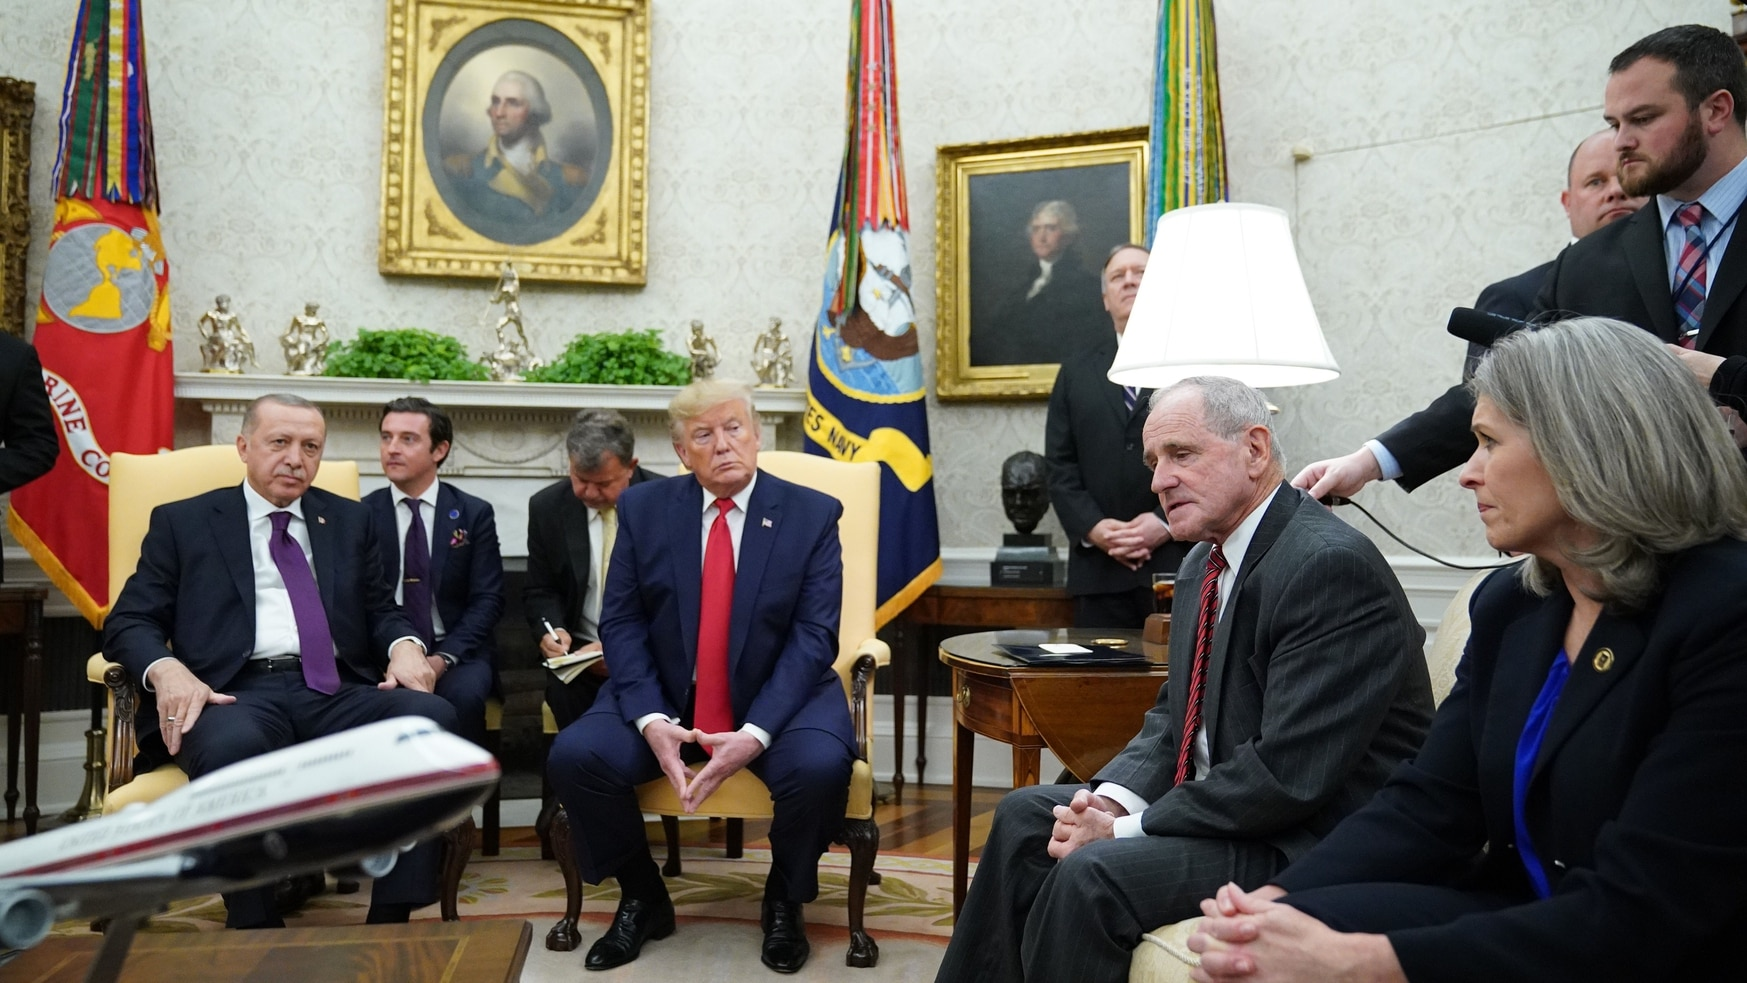 US President Donald Trump (C) and Turkey's President Recep Tayyip Erdogan (L) listen to U.S. Senate Foreign Relations Committee Jim Risch (2nd R) during a meeting in the Oval Office of the White House in Washington, DC on November 13, 2019. (MANDEL NGAN/AFP via Getty Images)